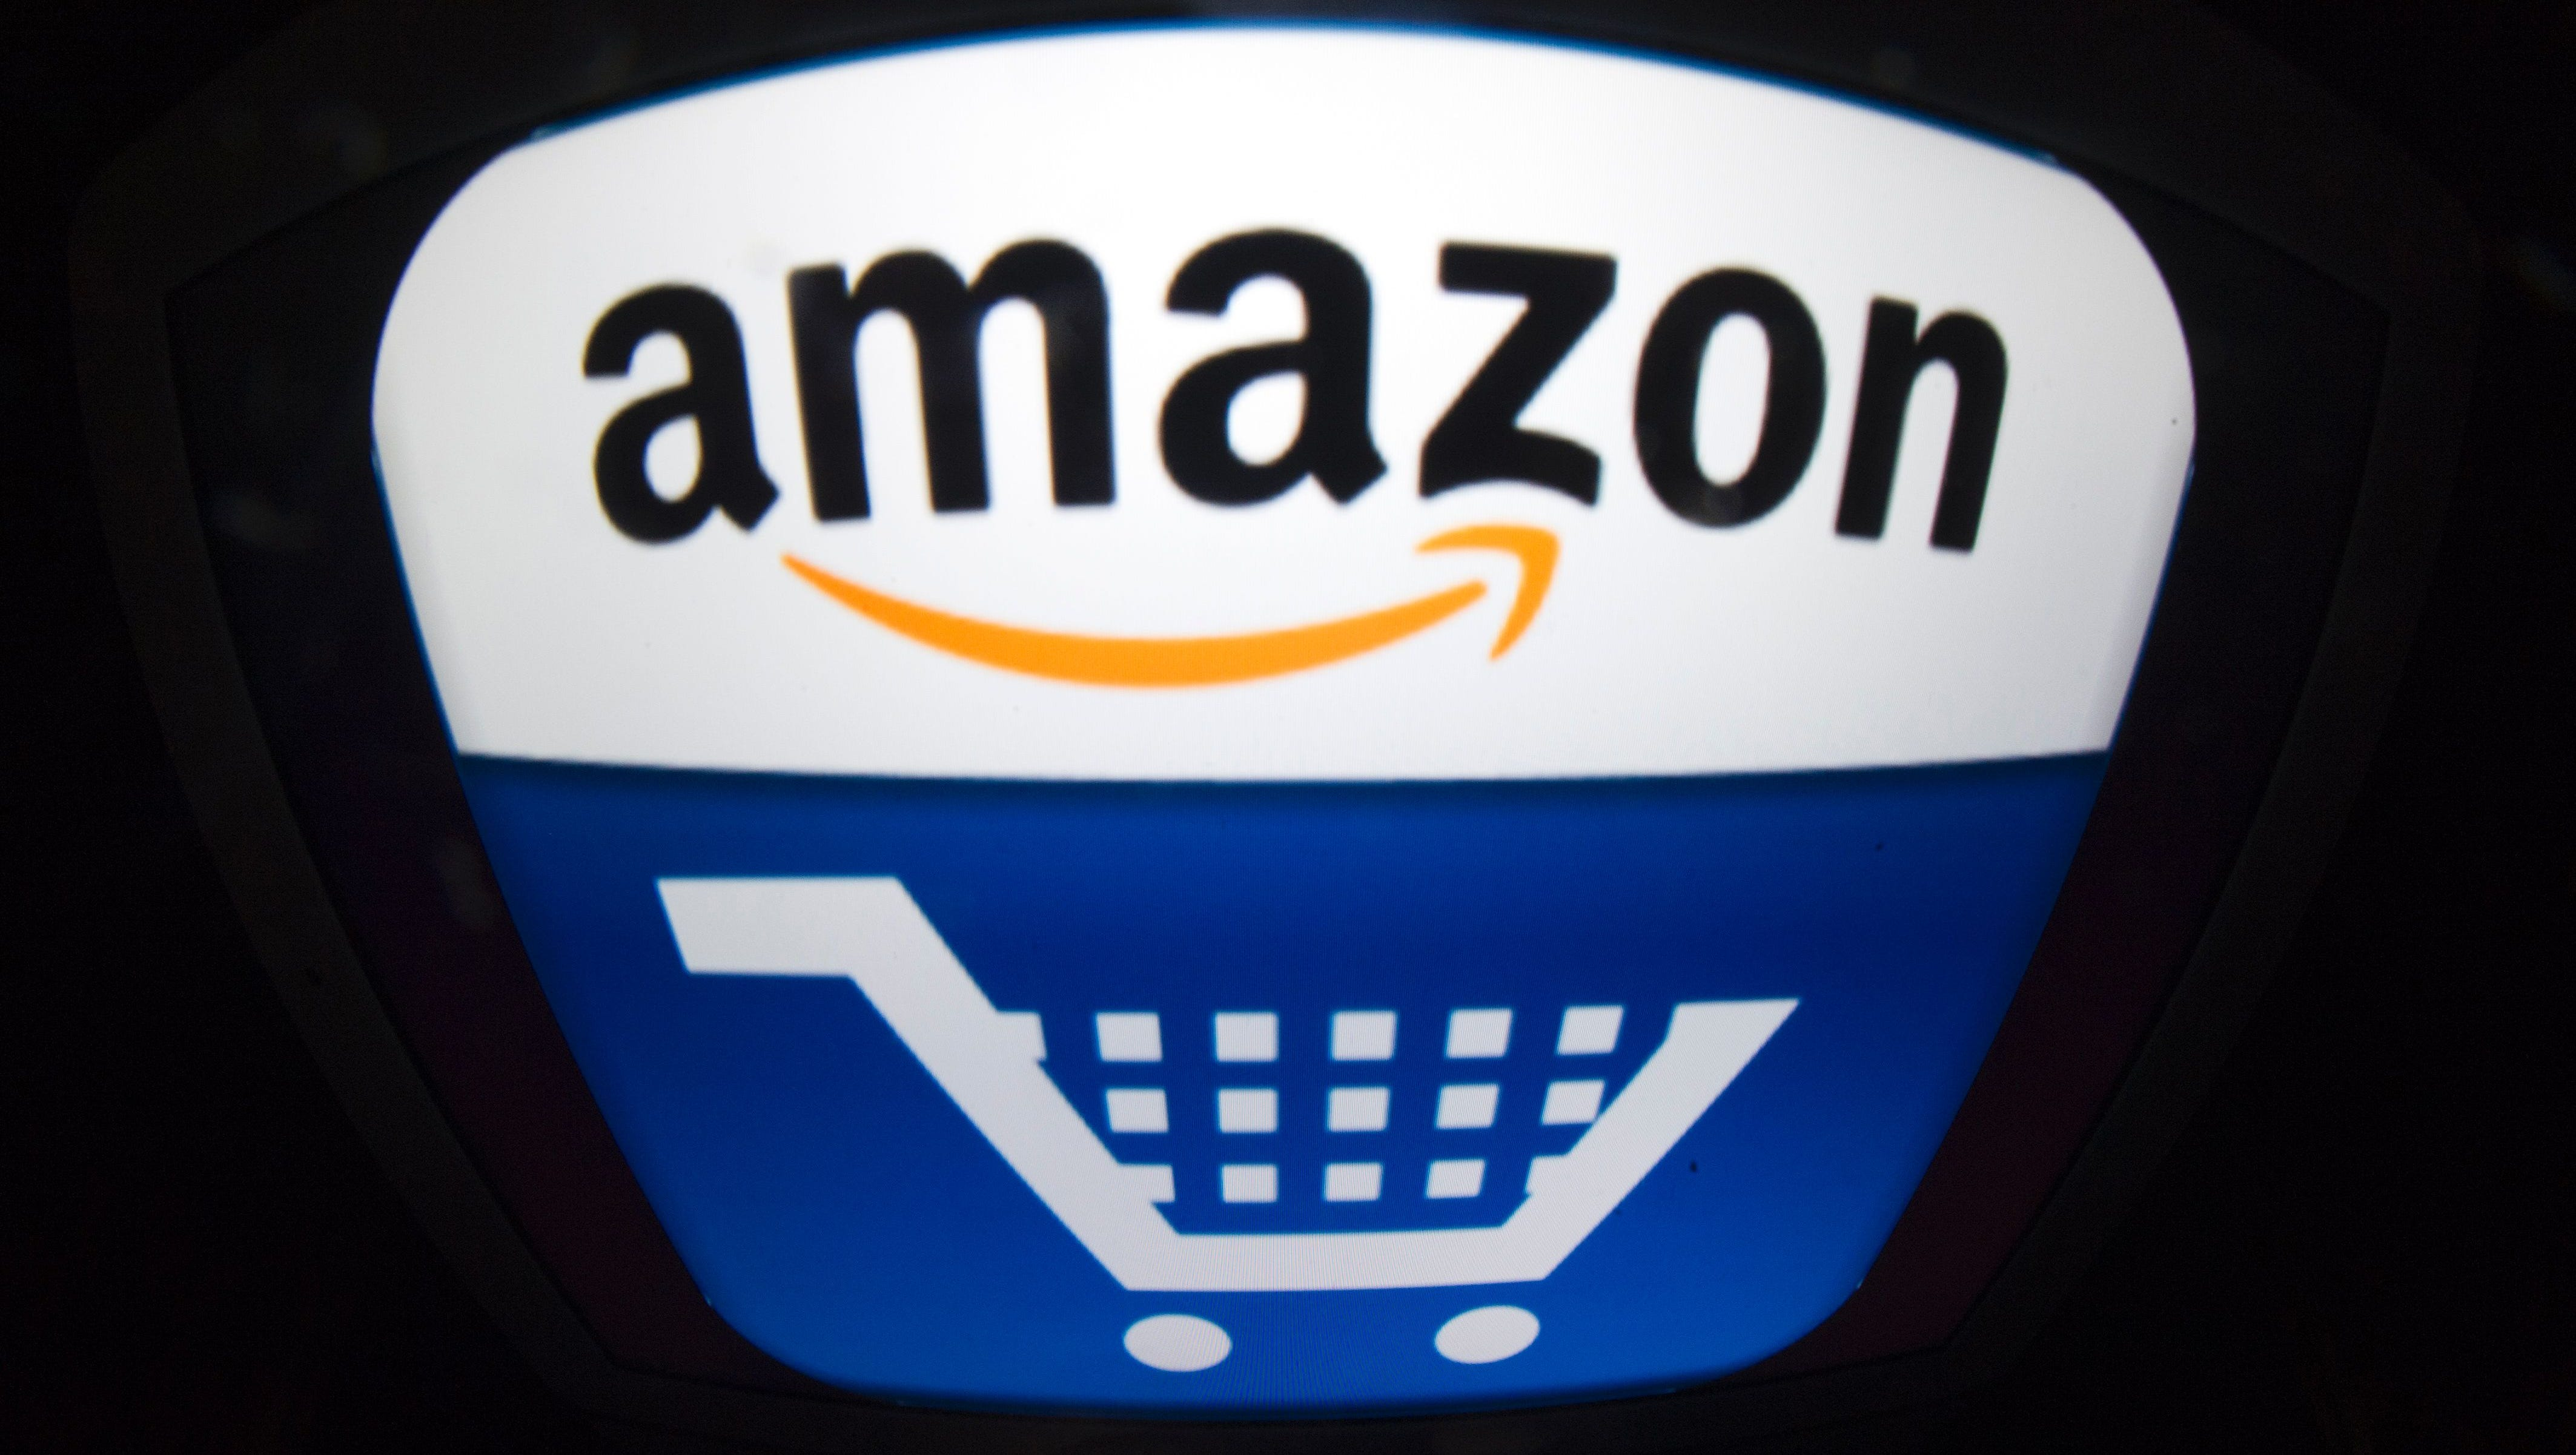 Amazon Tests Food Stamps Another Breach Of Wal Mart Territory